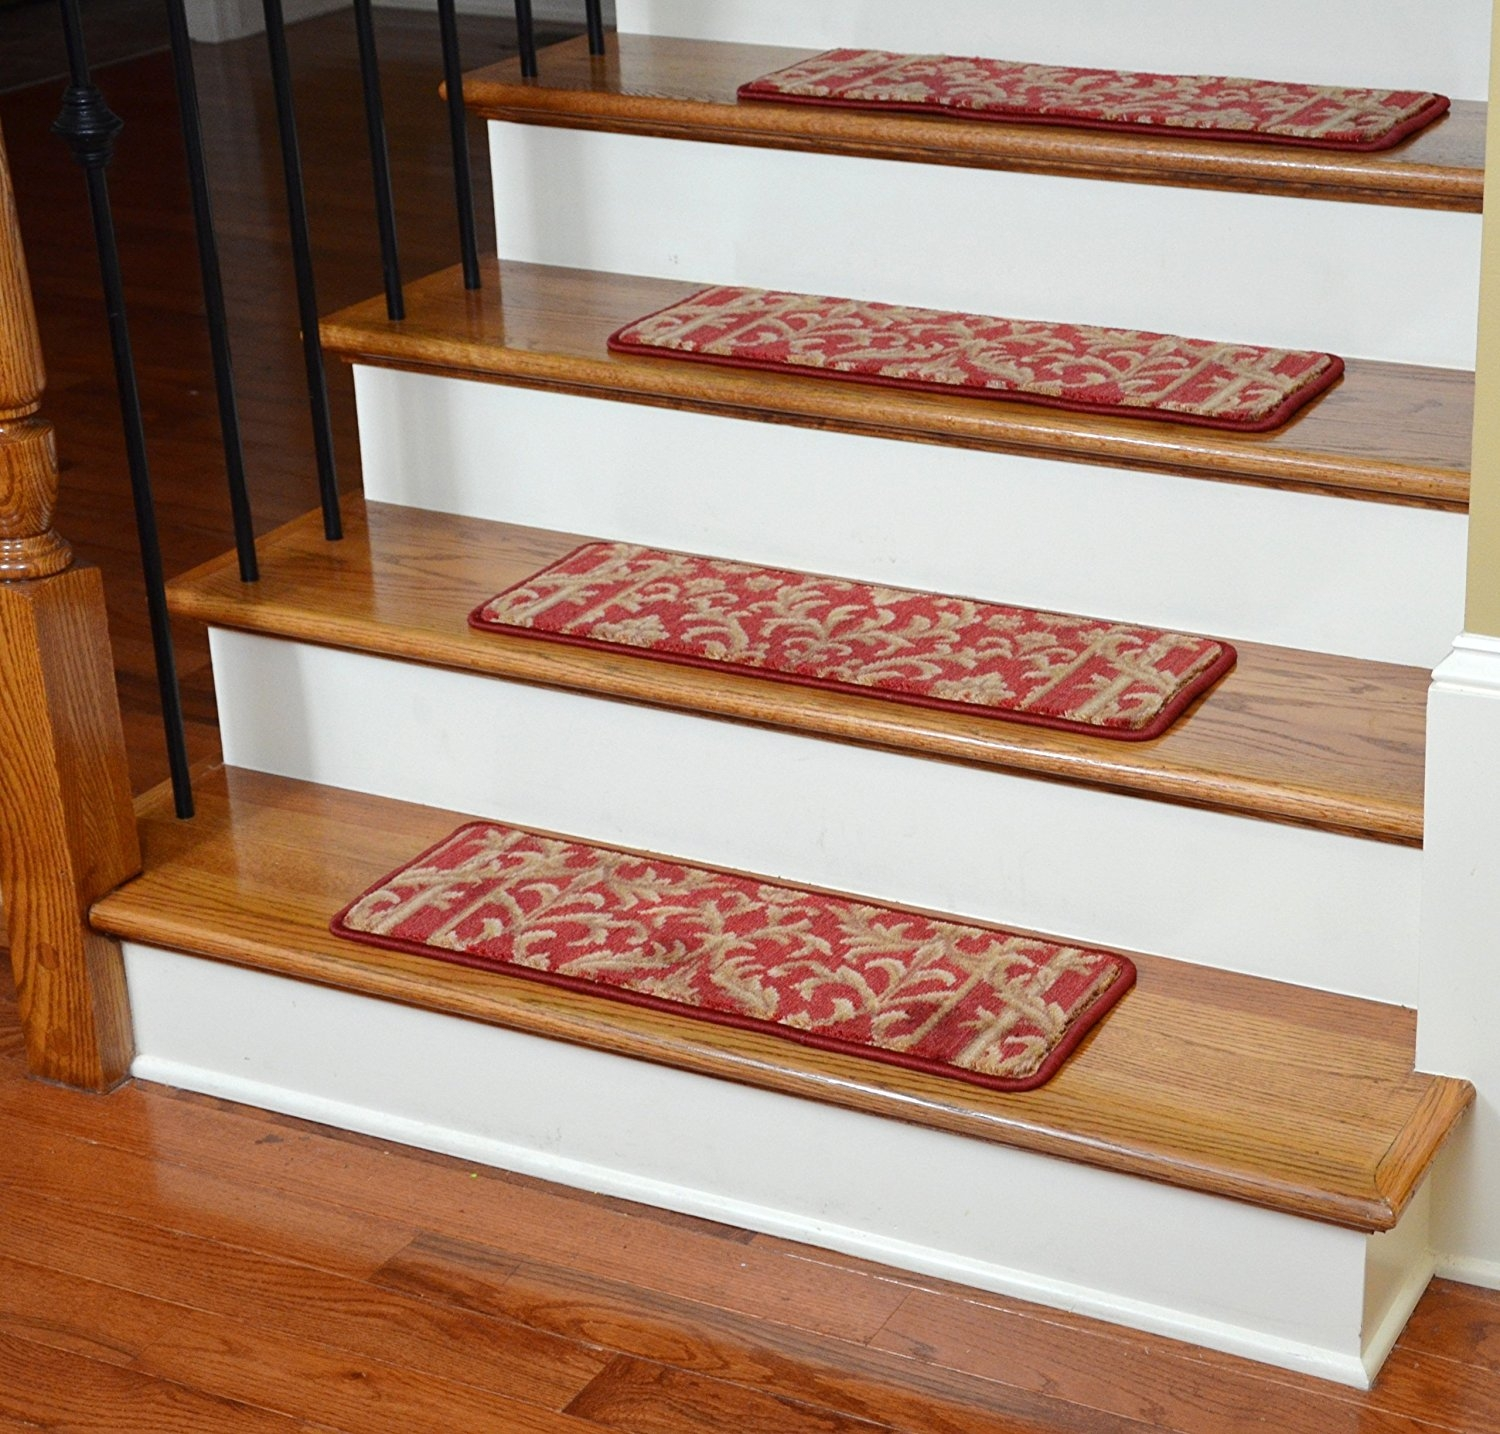 Flooring Pretty Stair Treads Carpet For Stair Decoration Idea Within Stair Tread Carpet Pads (#11 of 20)